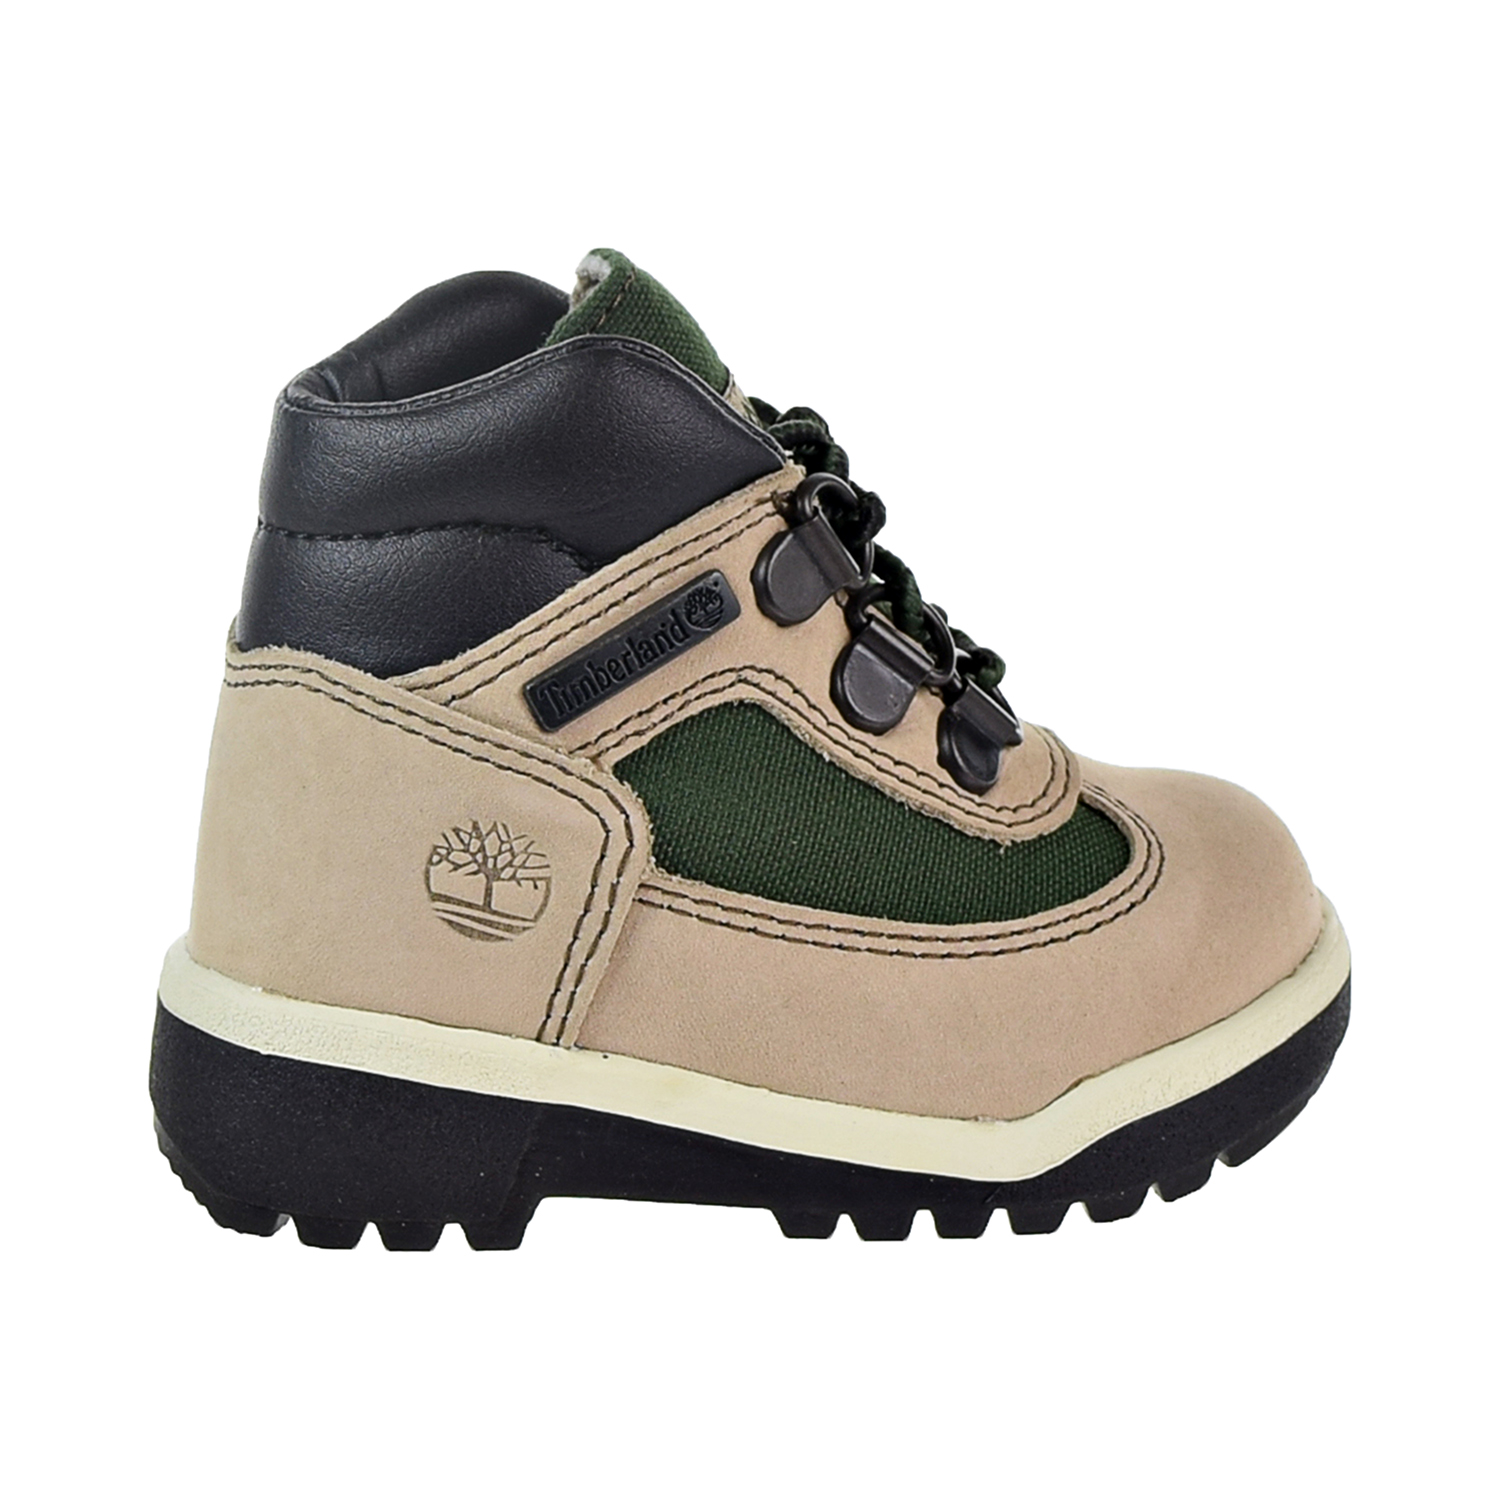 8653cff1f1c5 Details about Timberland Field Boot Toddlers Shoes Medium Beige Nubuck  TB0A1RNJ